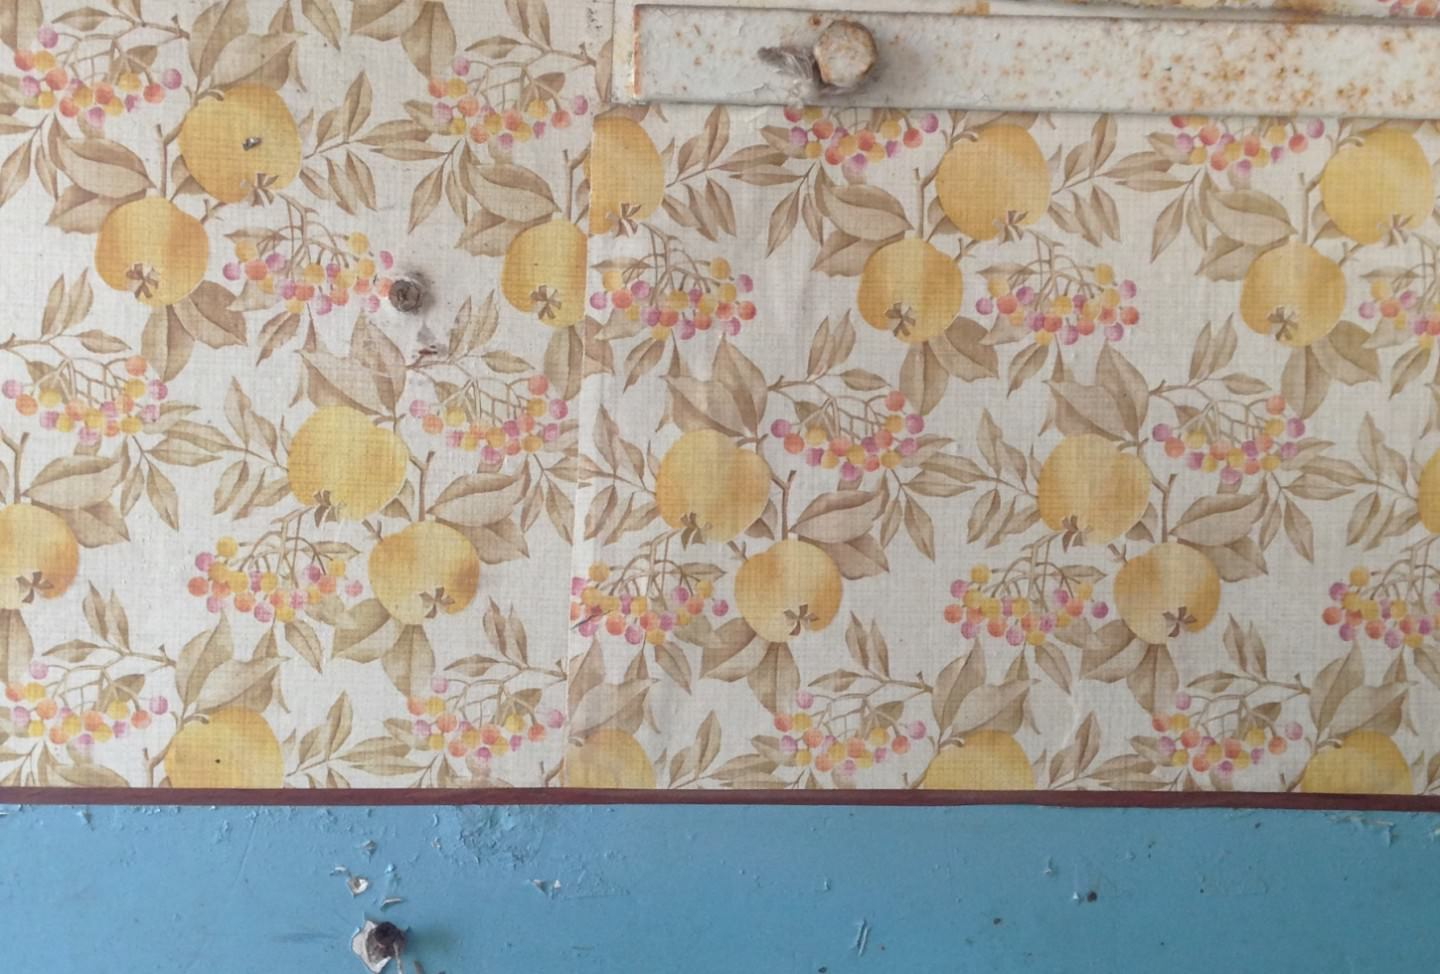 How systemic change is reflected in wall décor - or: When time stands still